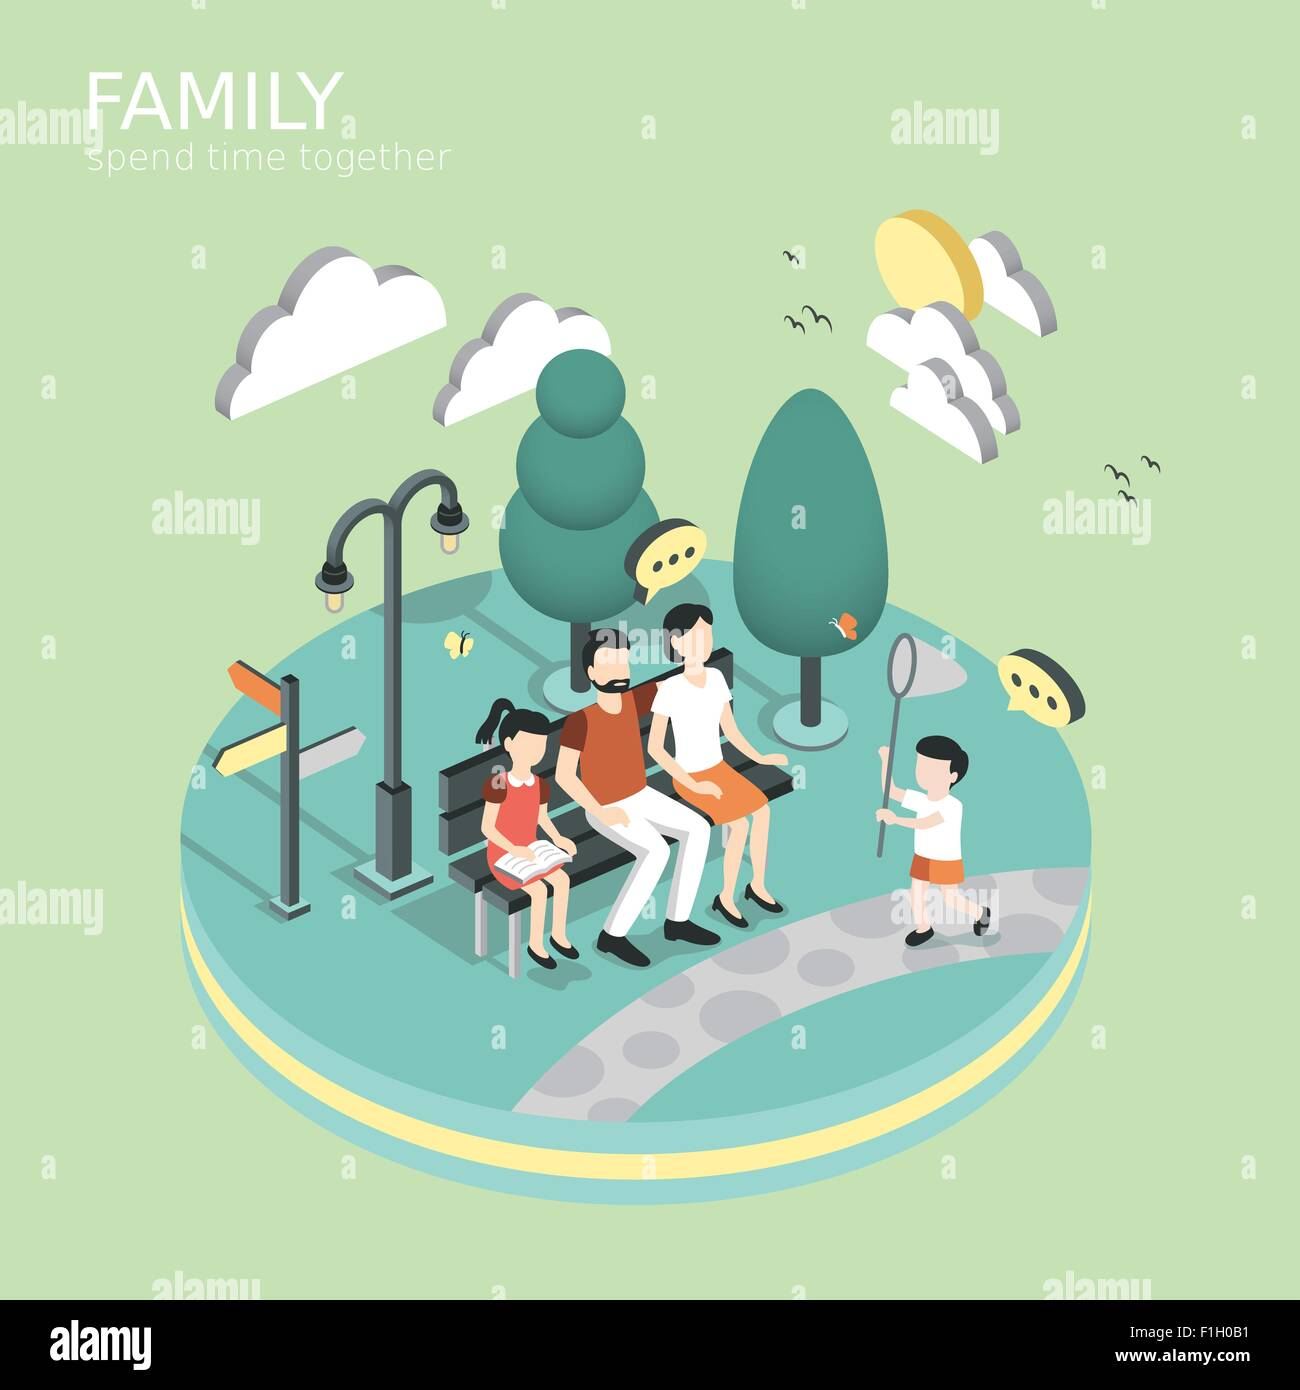 family spend time together concept in flat 3d isometric graphic - Stock Vector